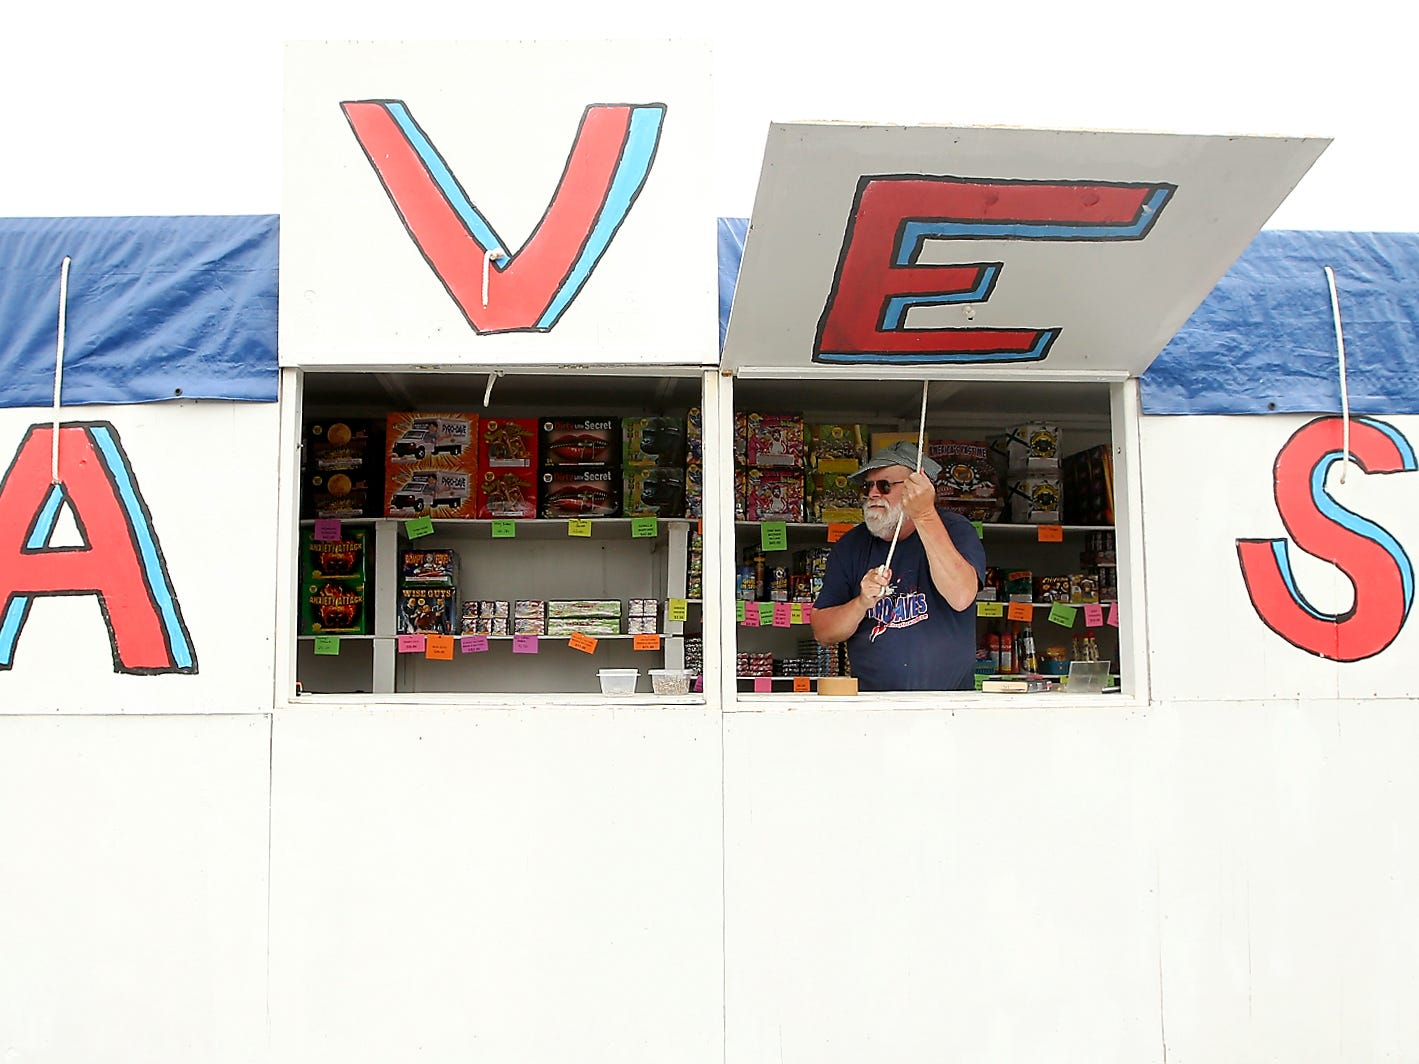 Dave Douglas hoists open one of the windows of his Pyro Dave's Fireworks stand as they ready for the first day of sales in the parking lot of Wilco in East Bremerton on Thursday, June 28, 2018. Douglas has been operating Pyro Dave's for 30 years.